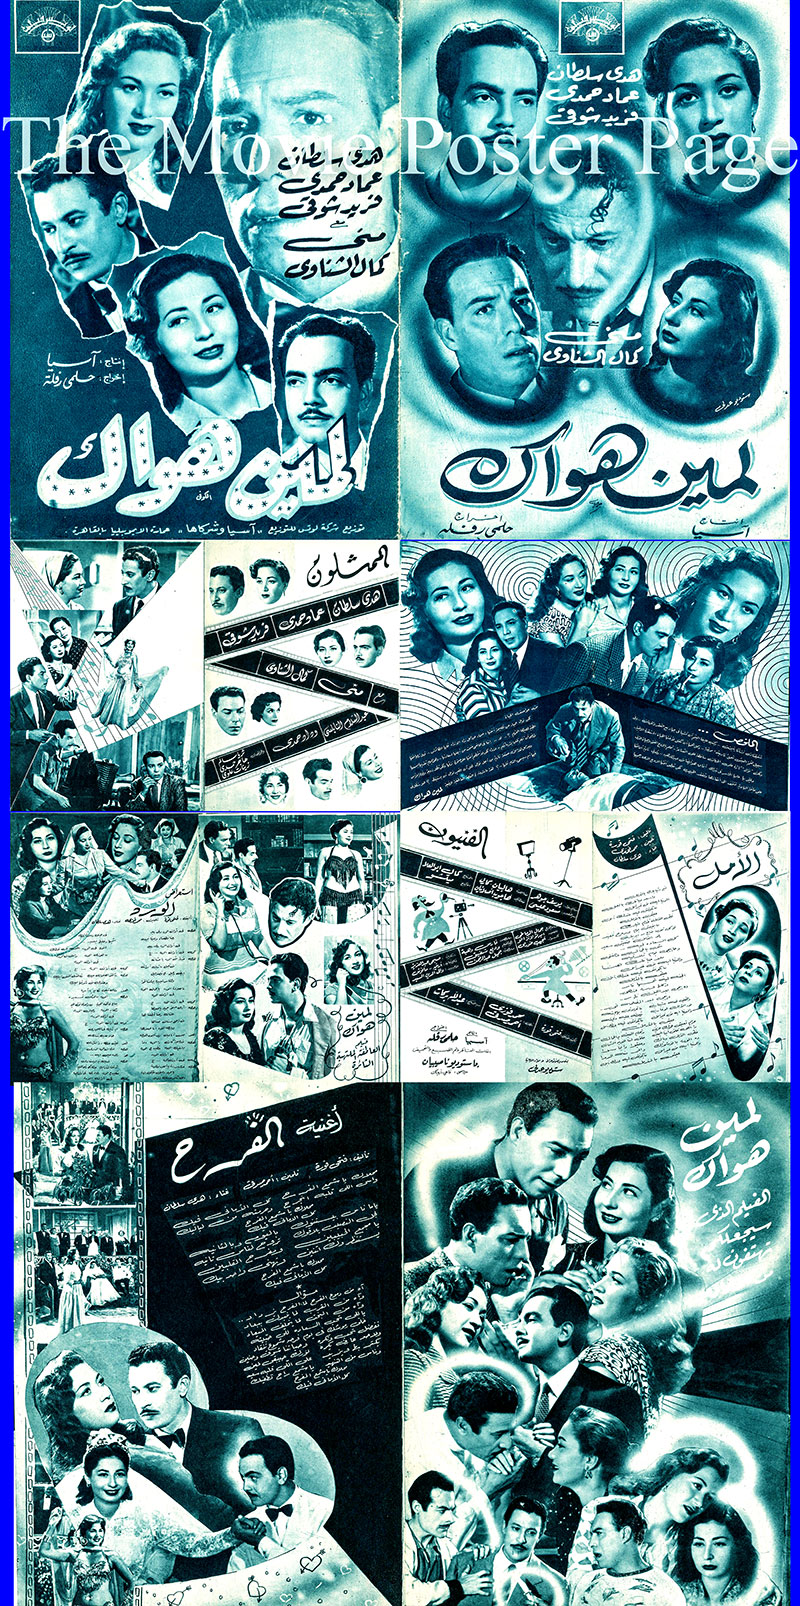 Pictured is an Egyptian promotional program for the 1954 Helmy Rafla film Who Do You Love starring Hoda Soltan.